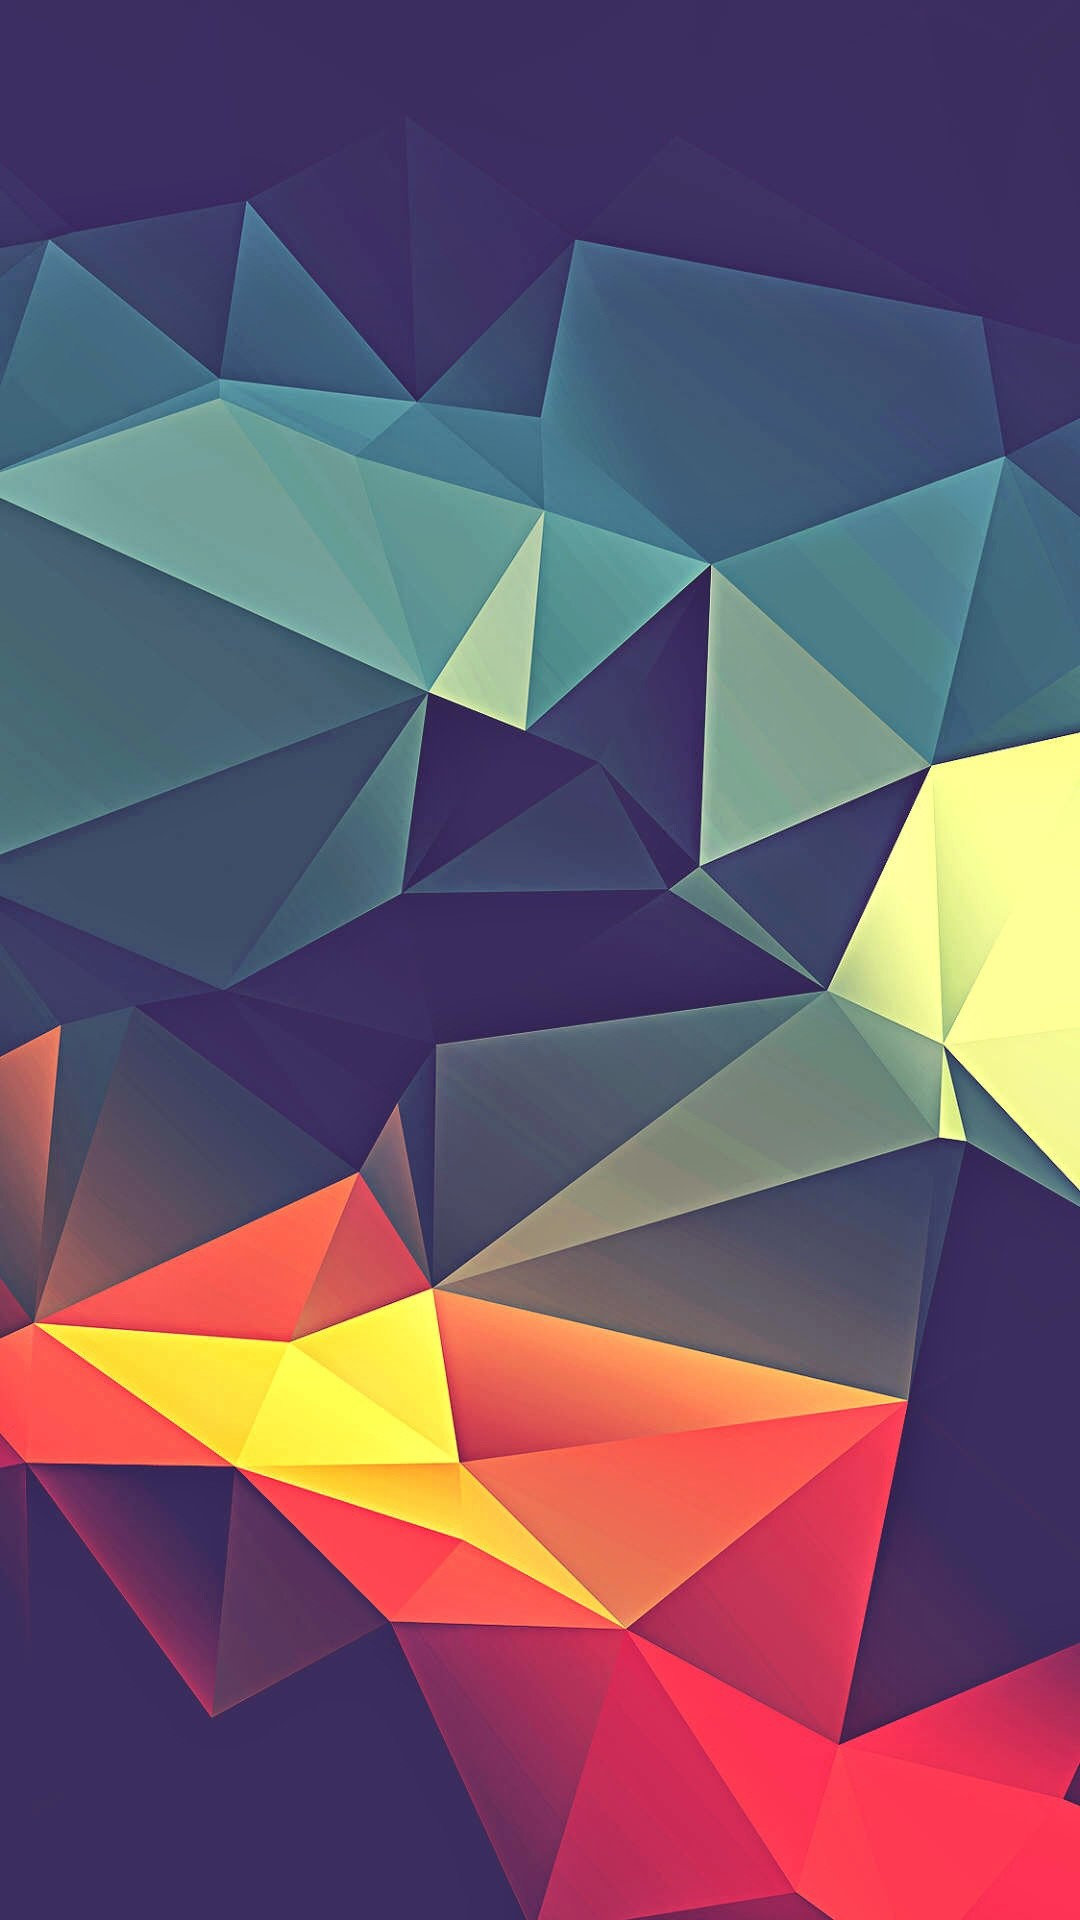 30 Awesome Iphone 6 plus HD Wallpapers